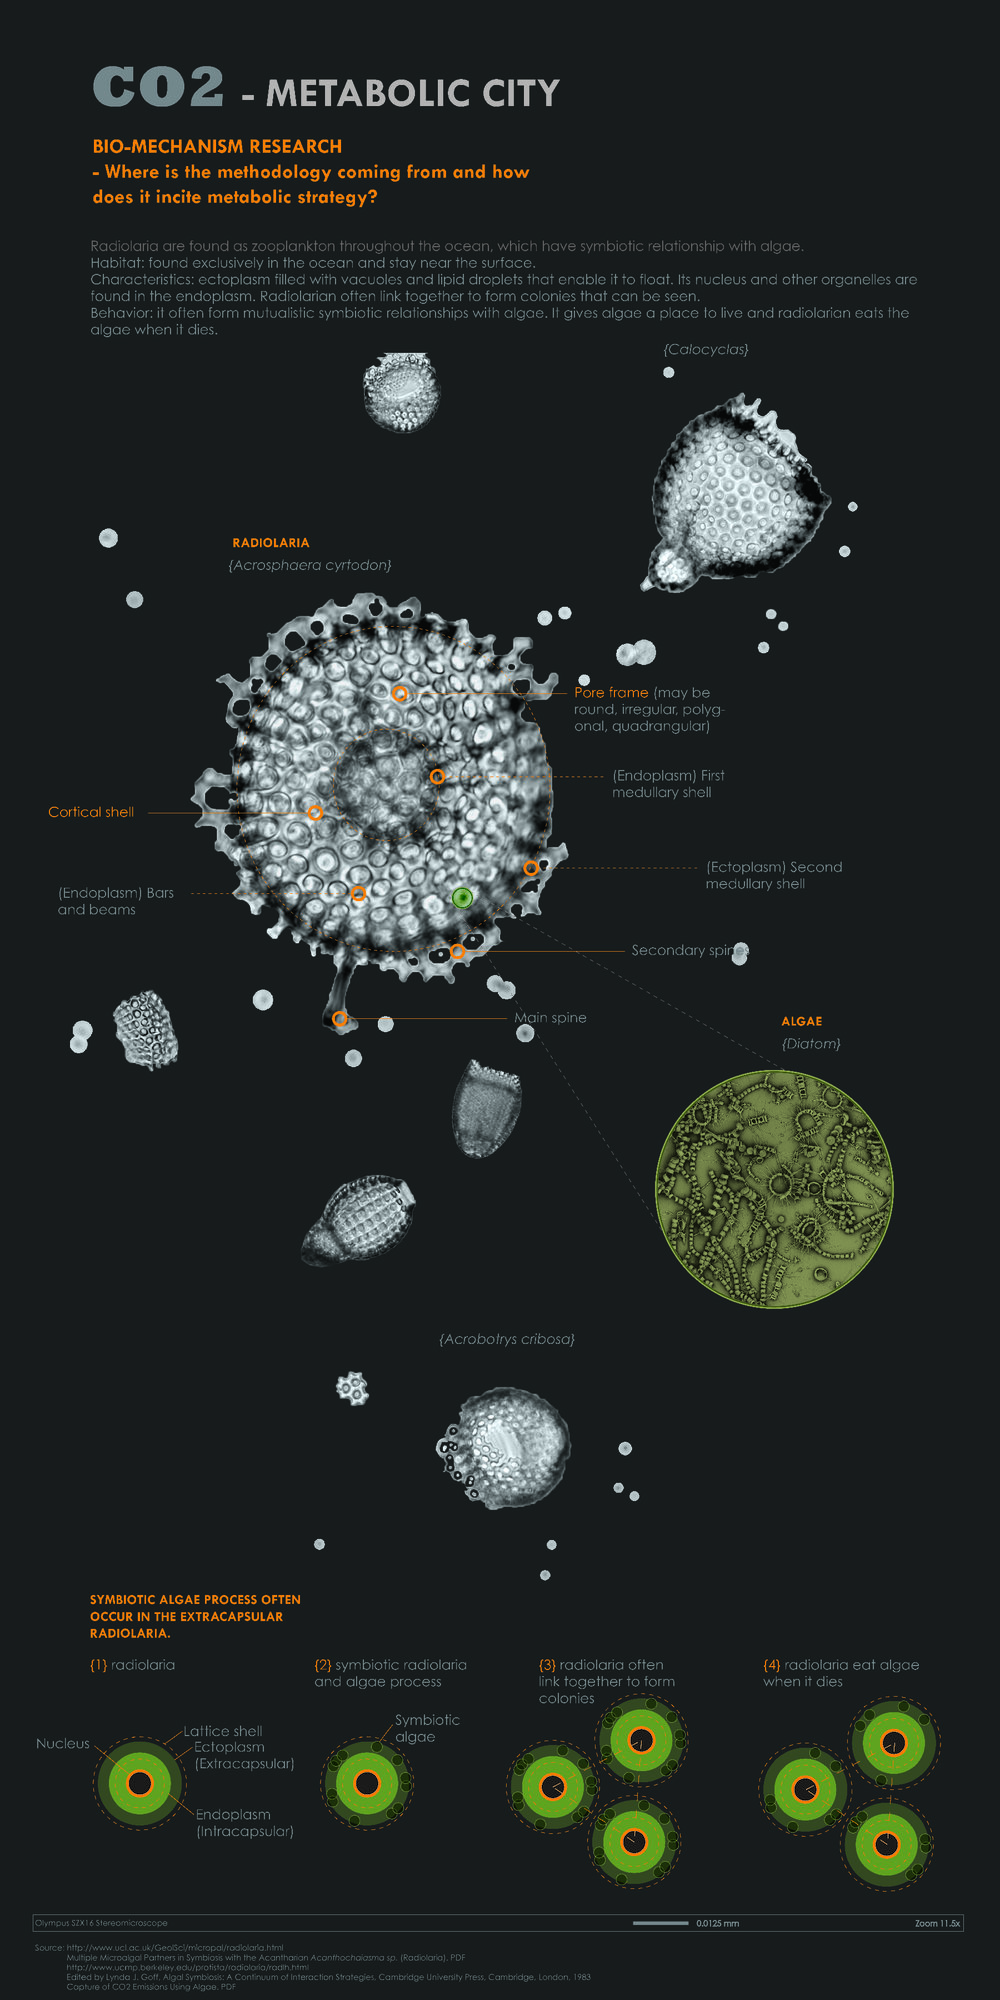 Bio-mechanism research on radiolaria and algae (which has 200 times ability in CO2 absorption than certain trees)